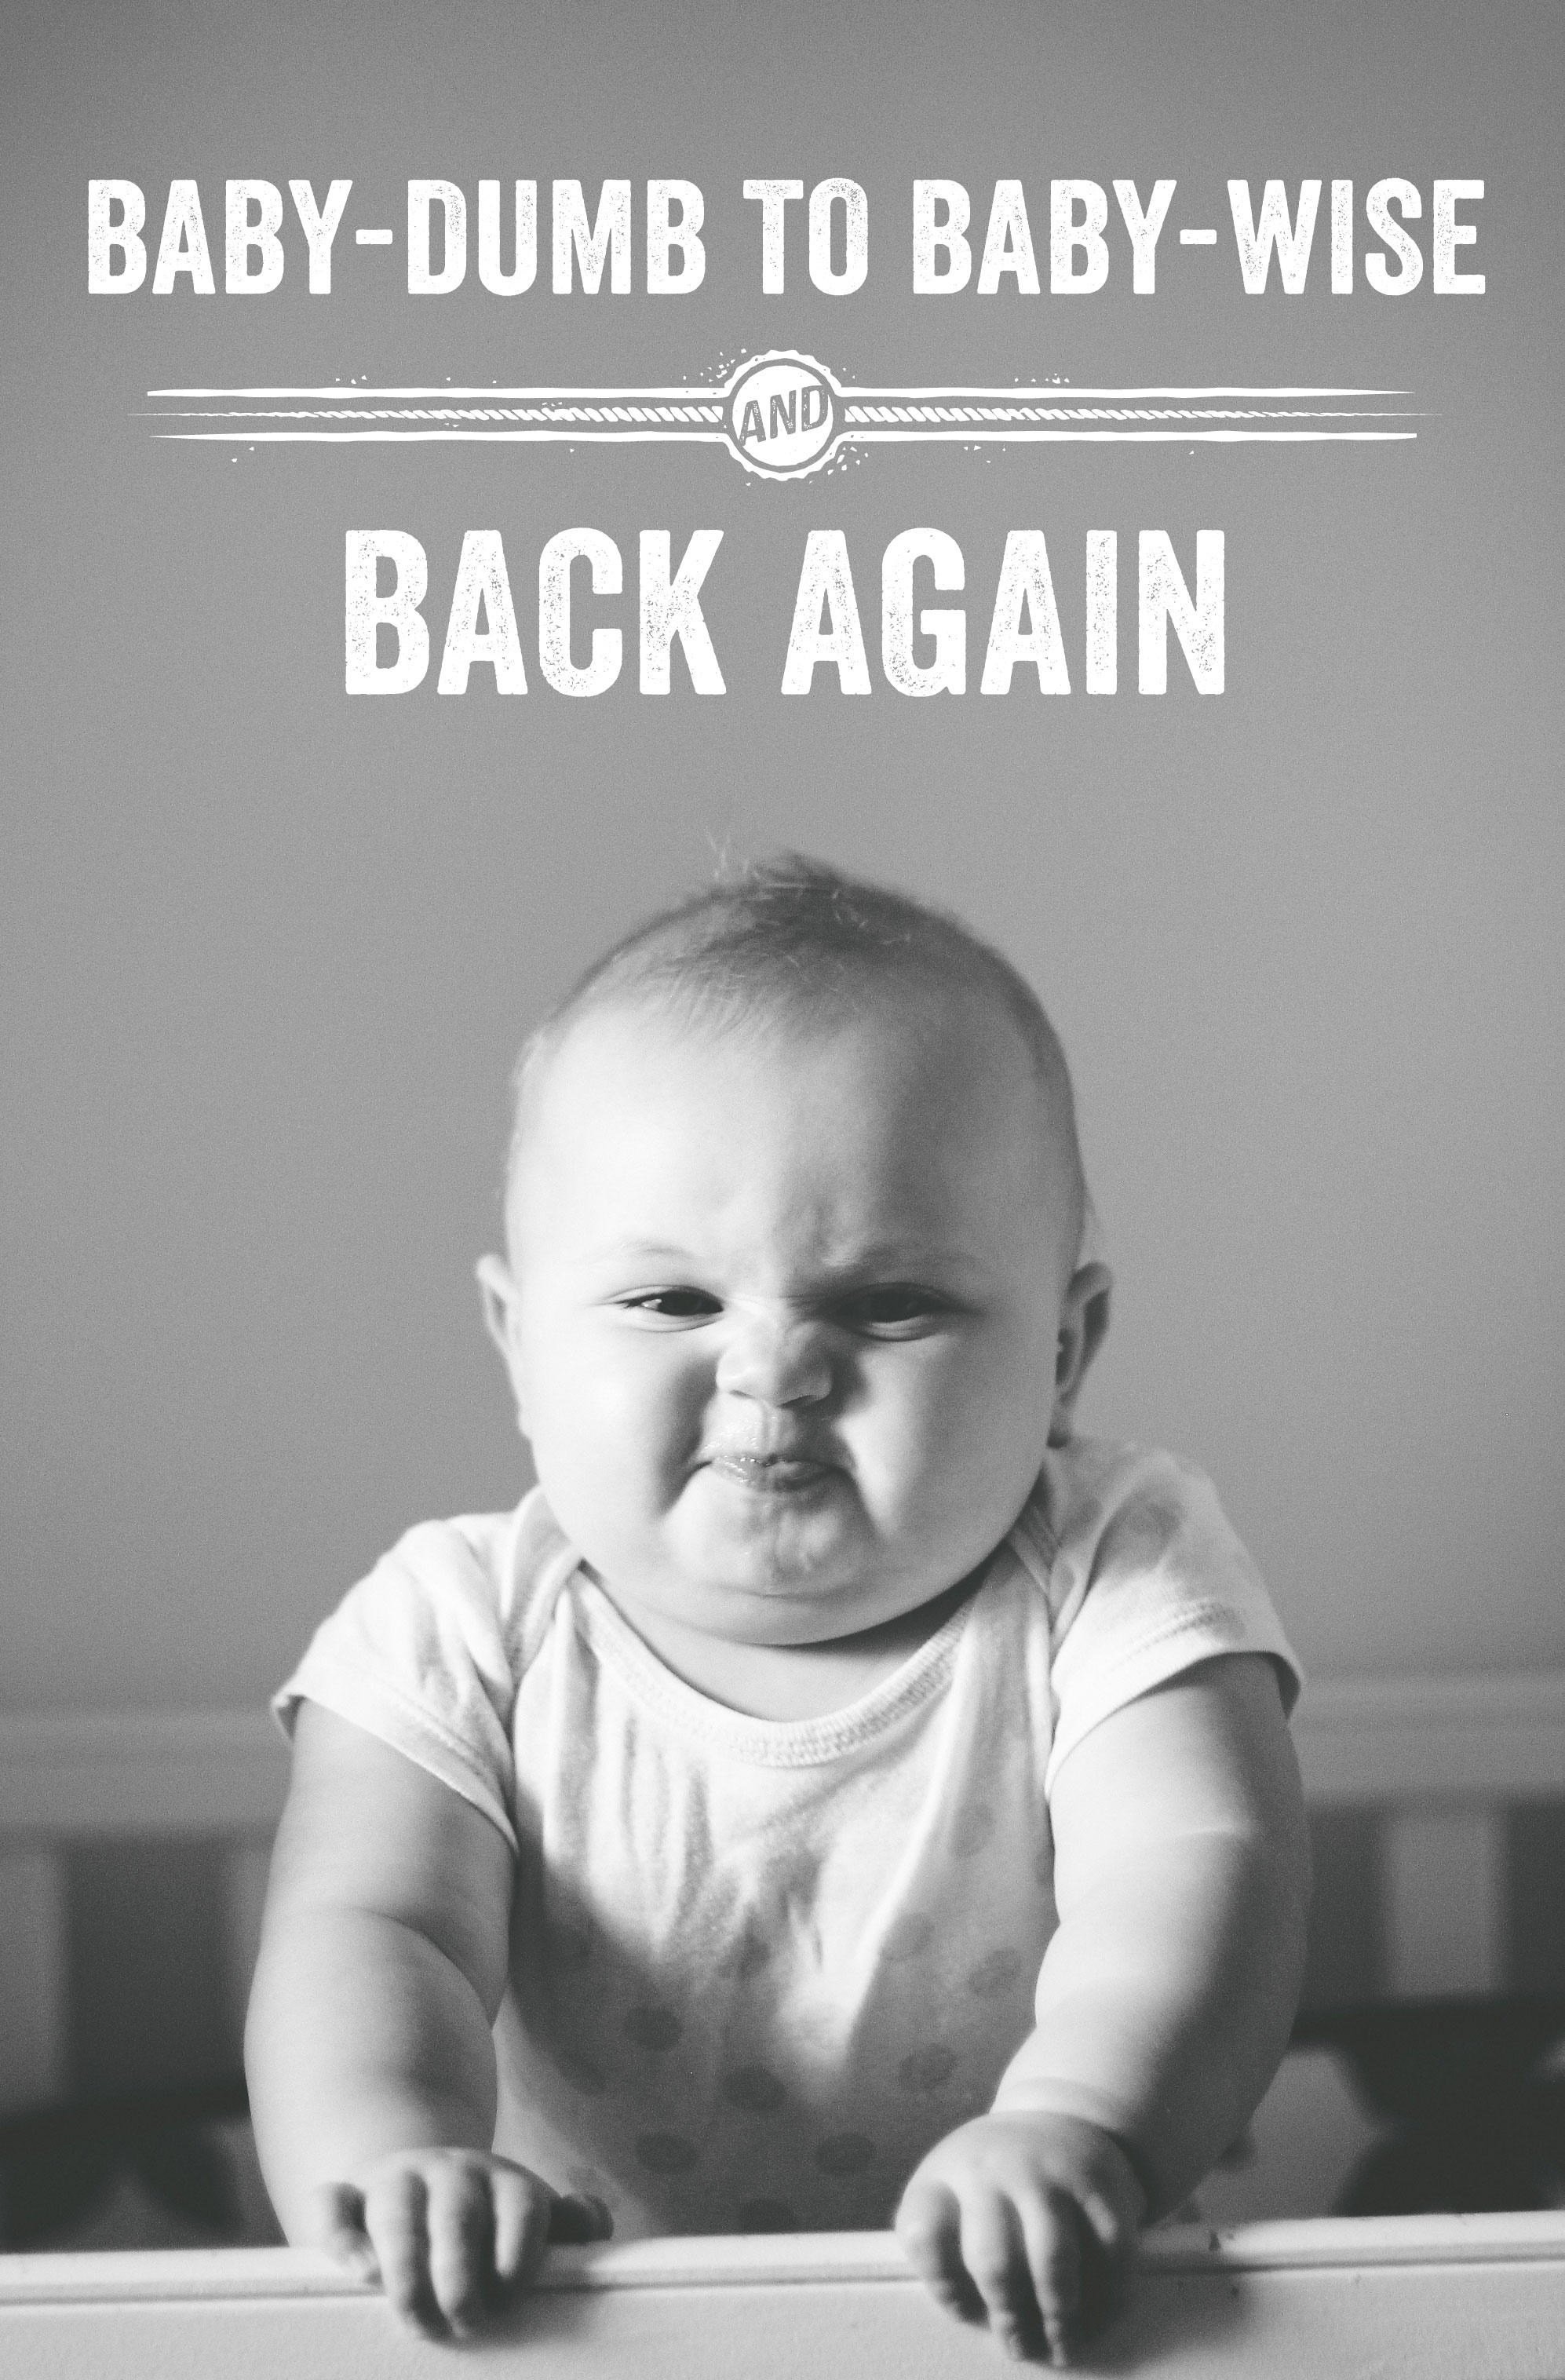 BabyDumb to BabyWise and Back Again